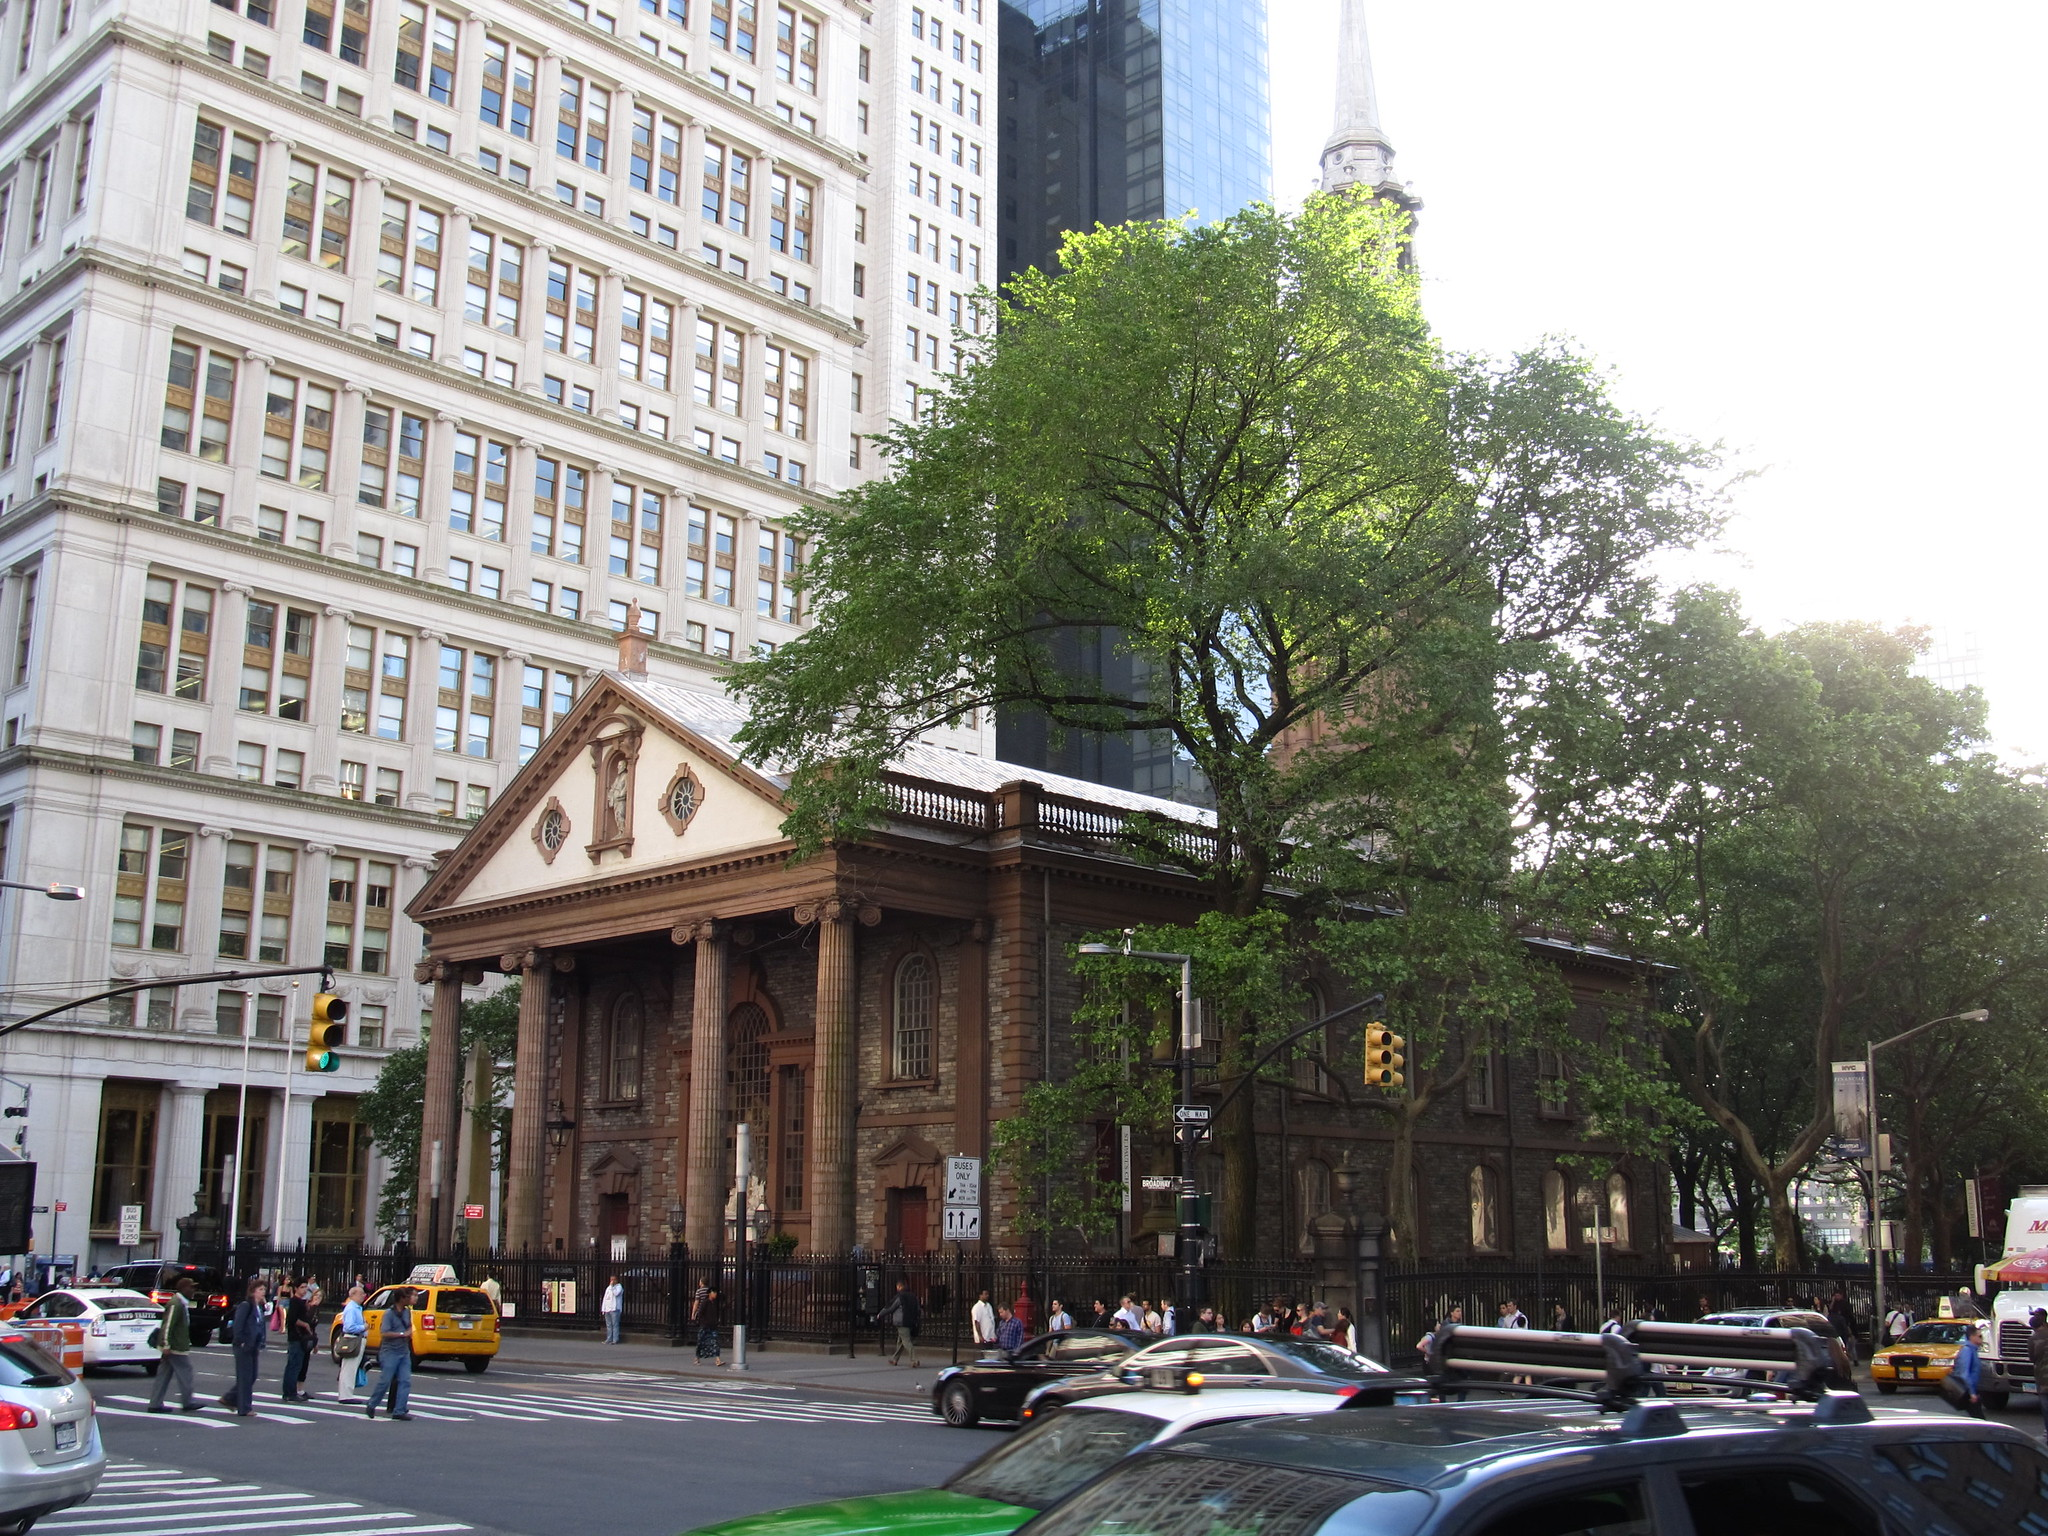 Capilla de St. Paul en Nueva York - Flickr/Ken Lund